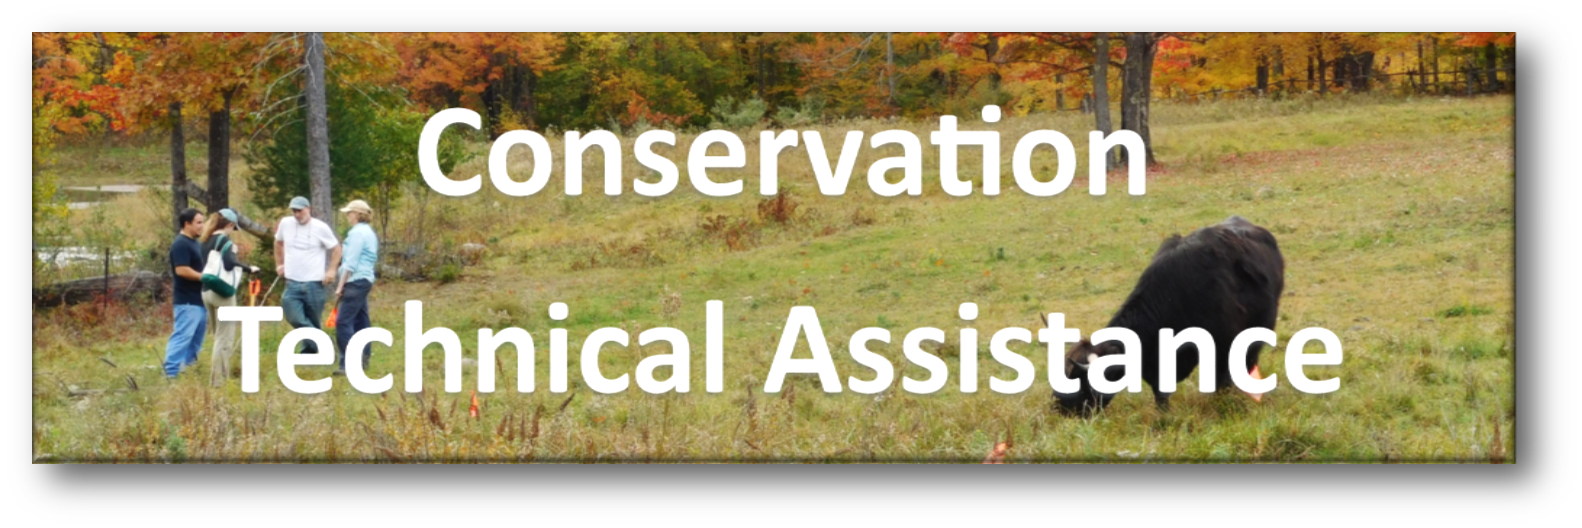 Conservation Technical Assistance